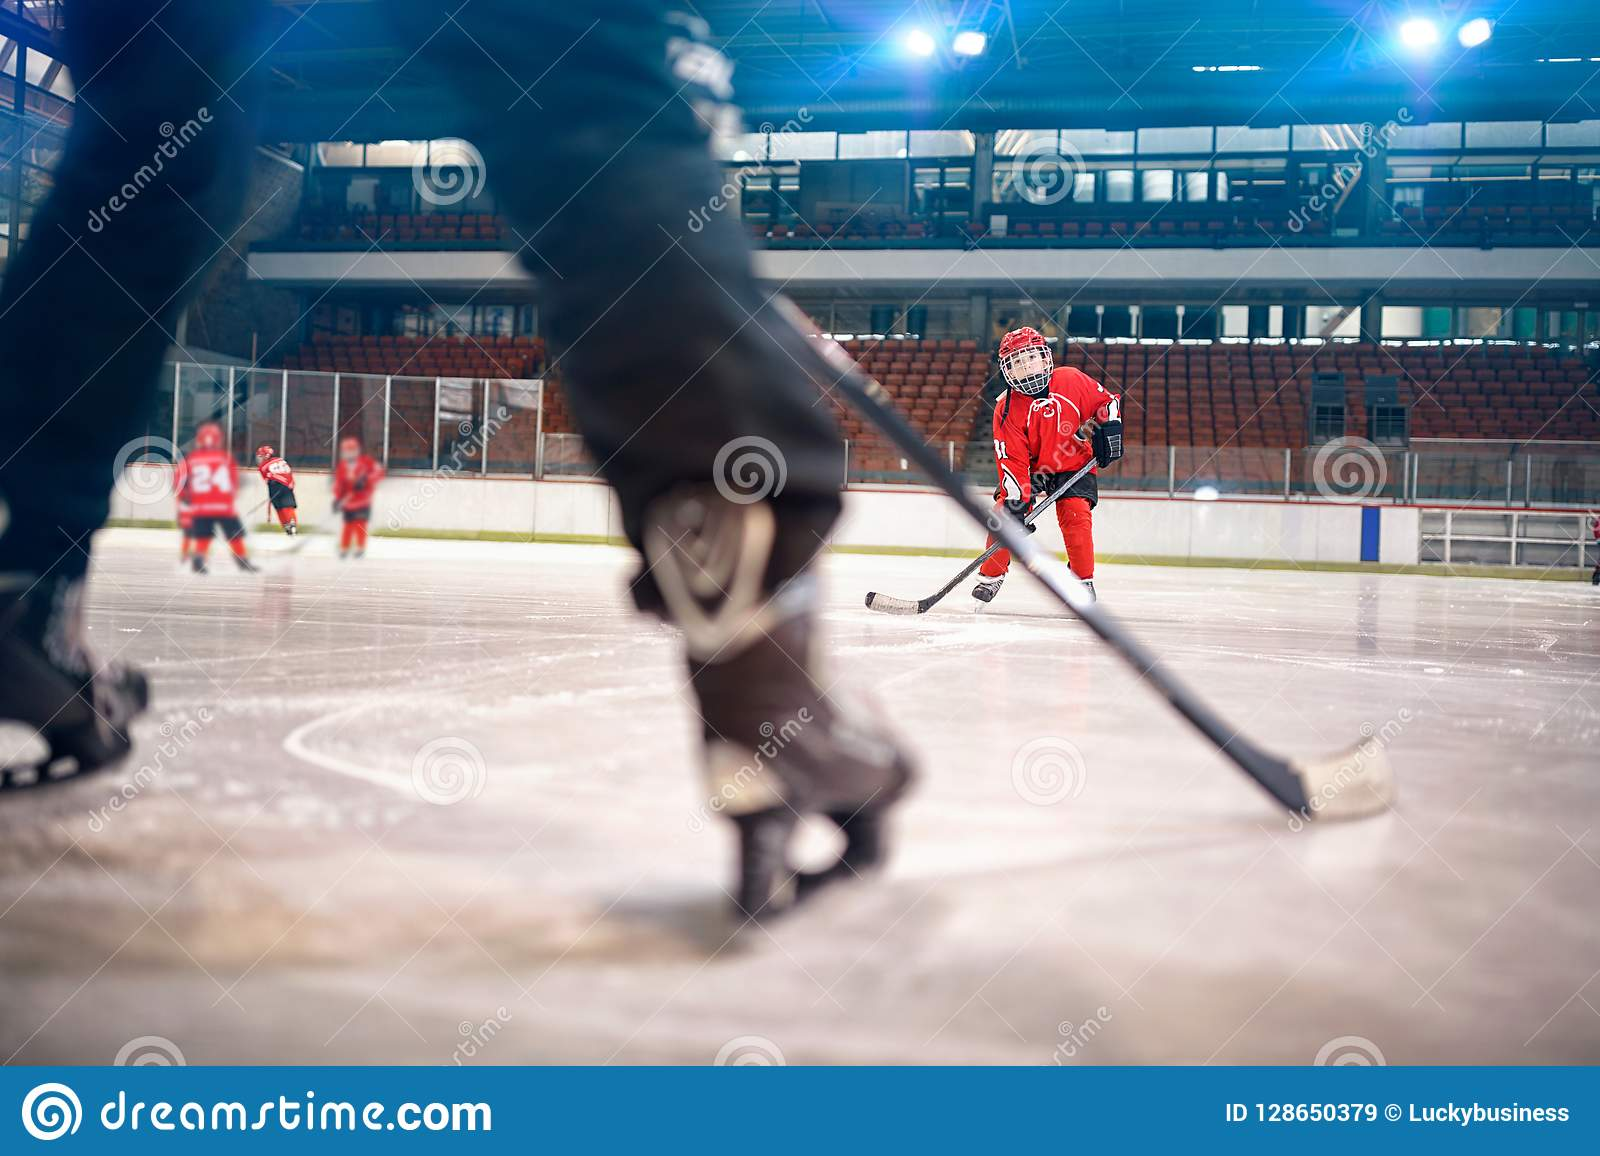 Hockey match at rink boy player in action